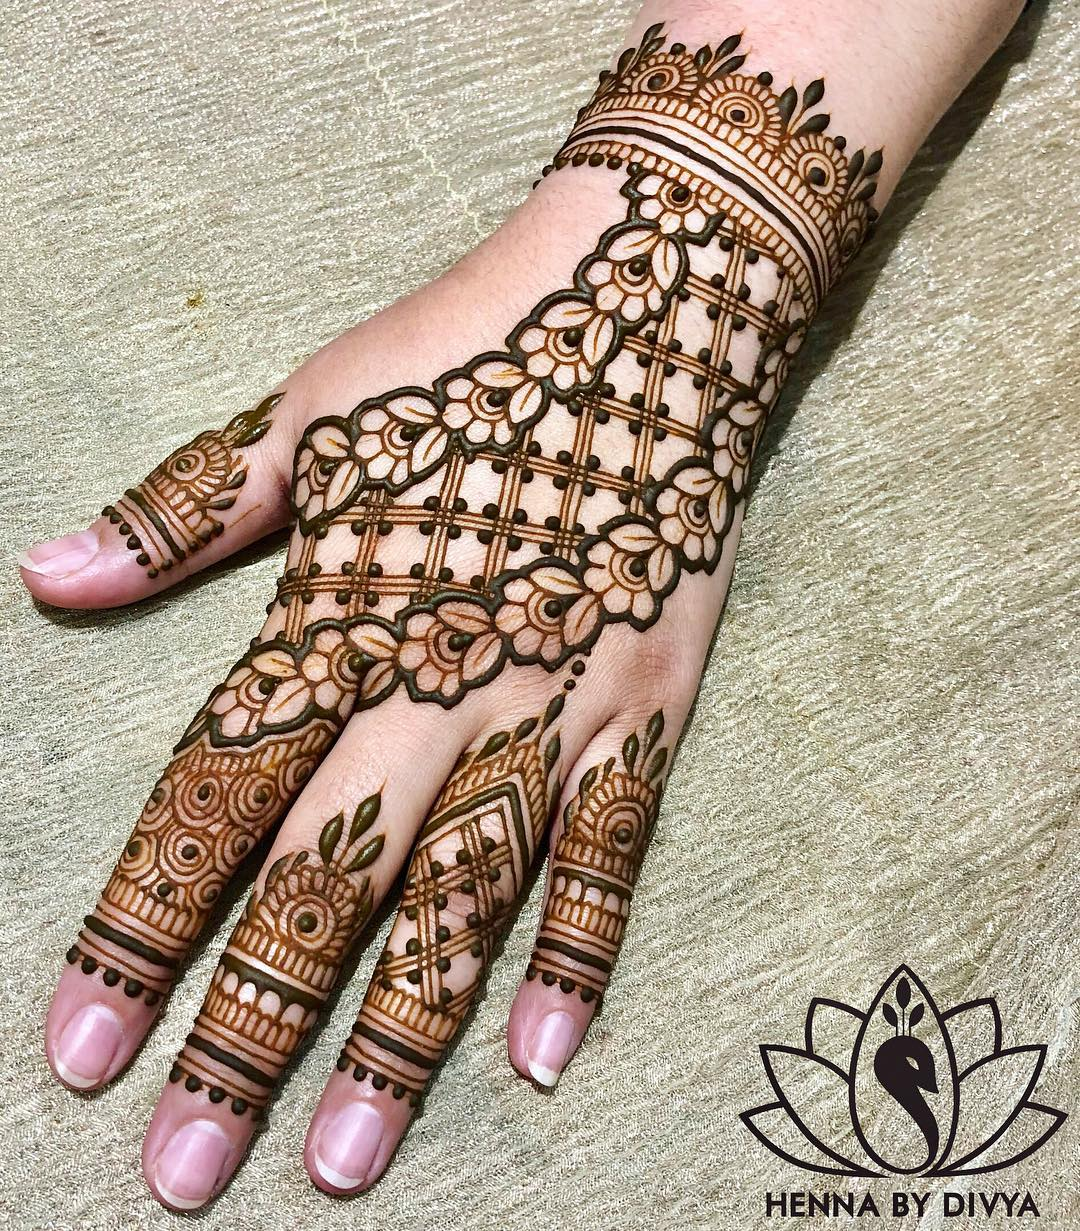 Henna Stencils: 40+ Simple Bridal Mehendi Designs: For The Bride's Hands